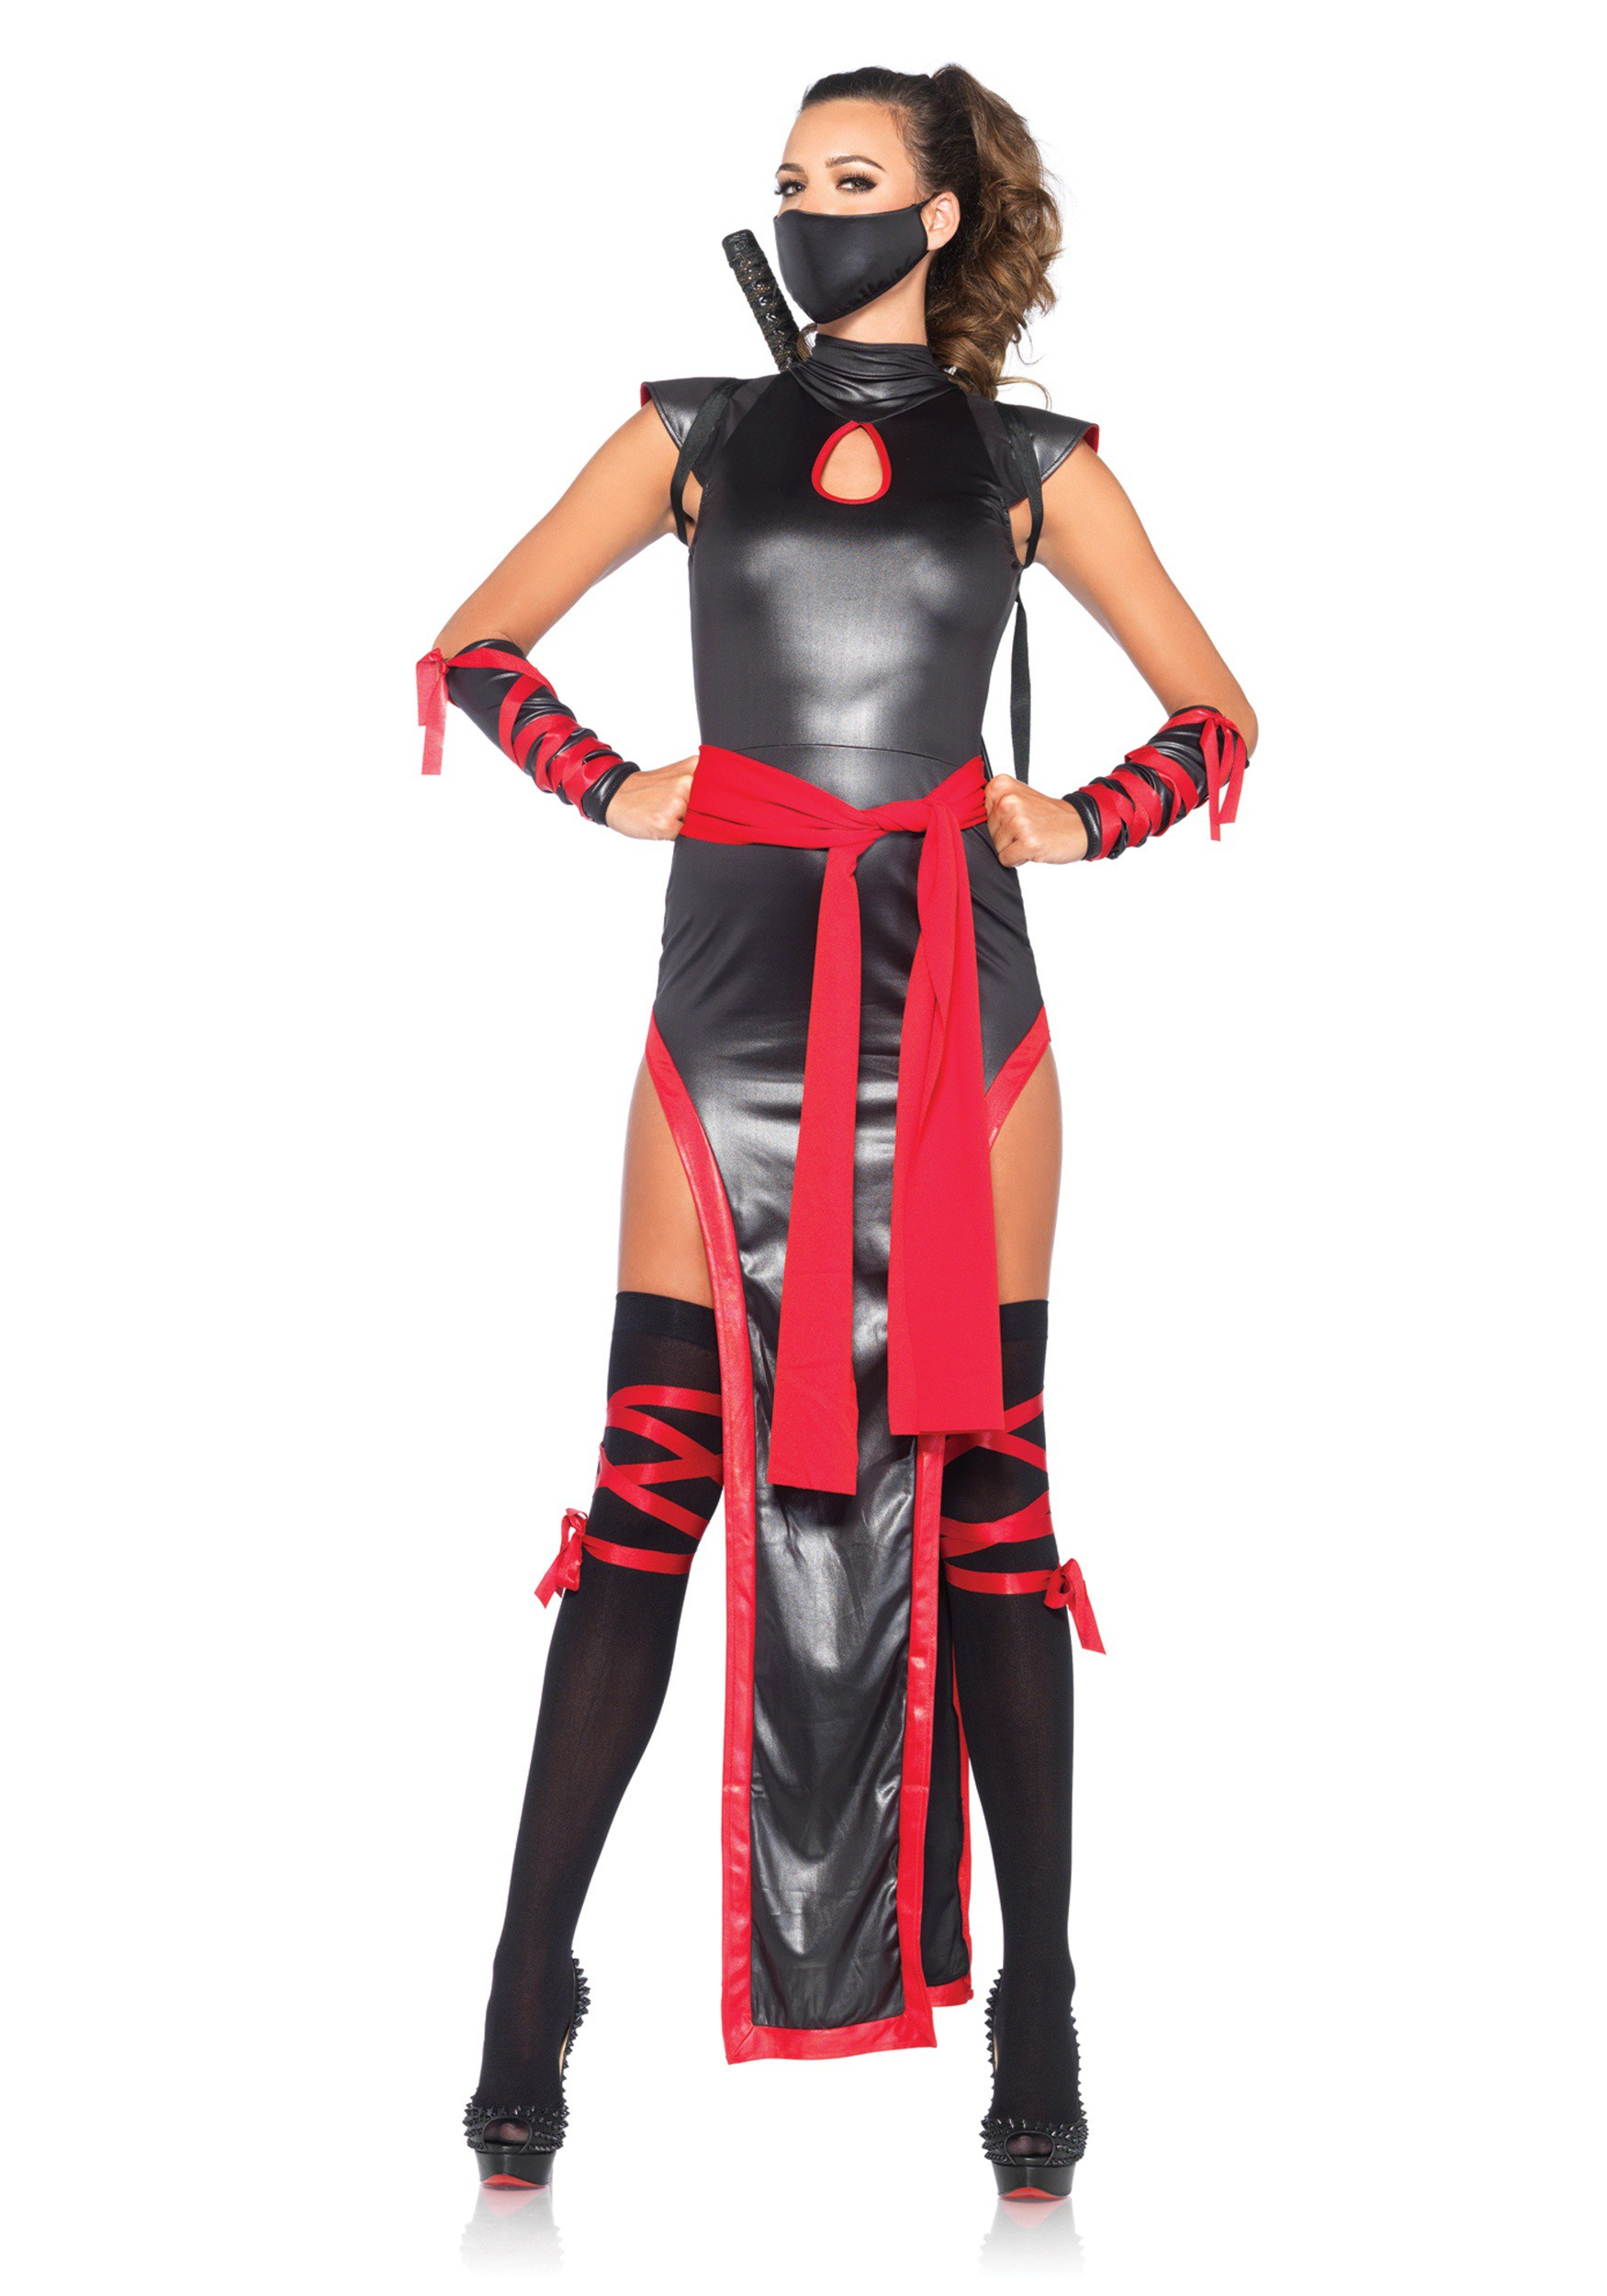 women 39 s shadow ninja costume. Black Bedroom Furniture Sets. Home Design Ideas